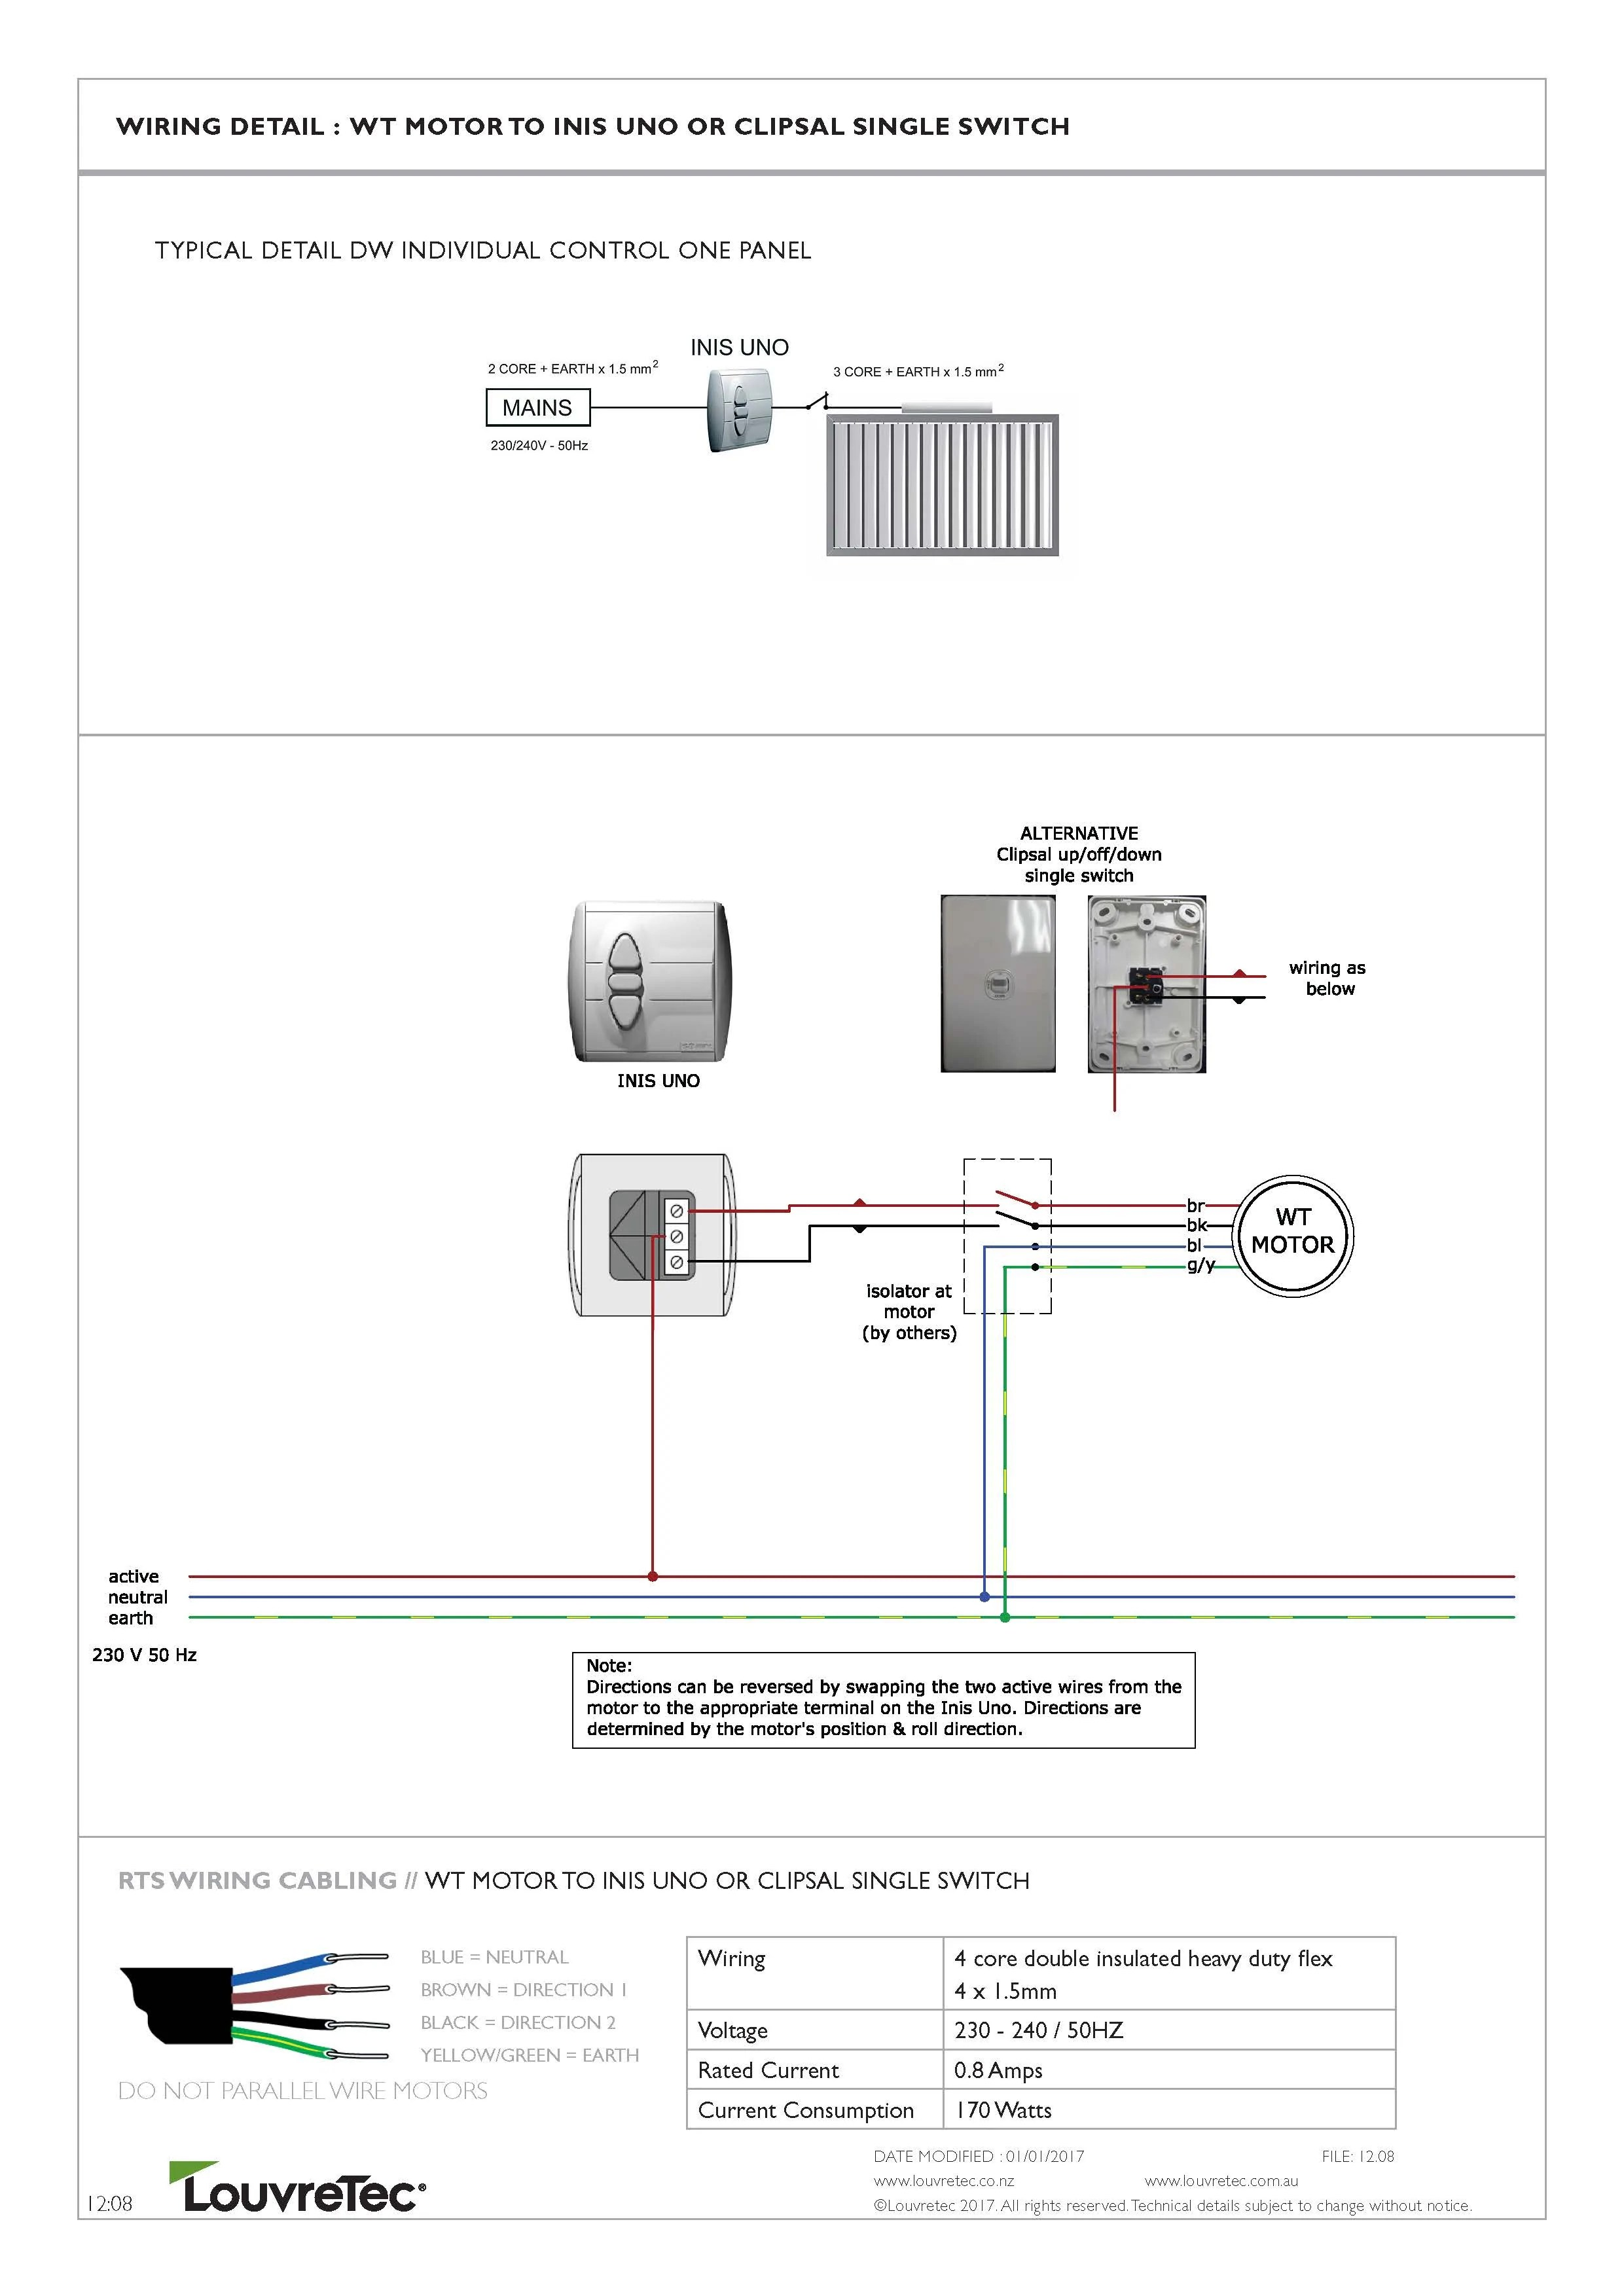 hight resolution of wt motor to inis uno or clipsal single switch 12 08